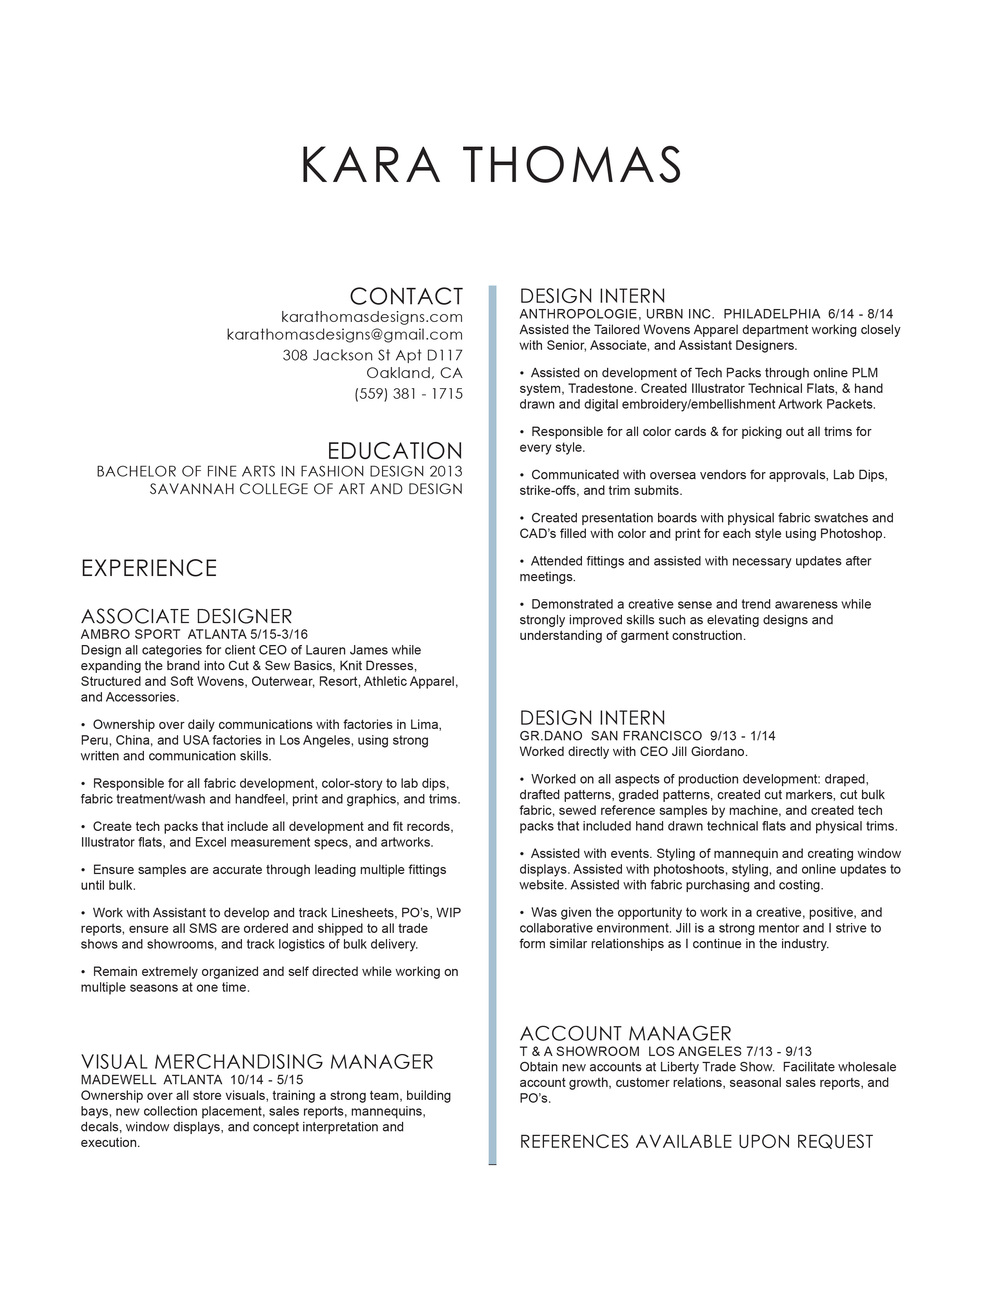 Click on Image of Resume to download PDF